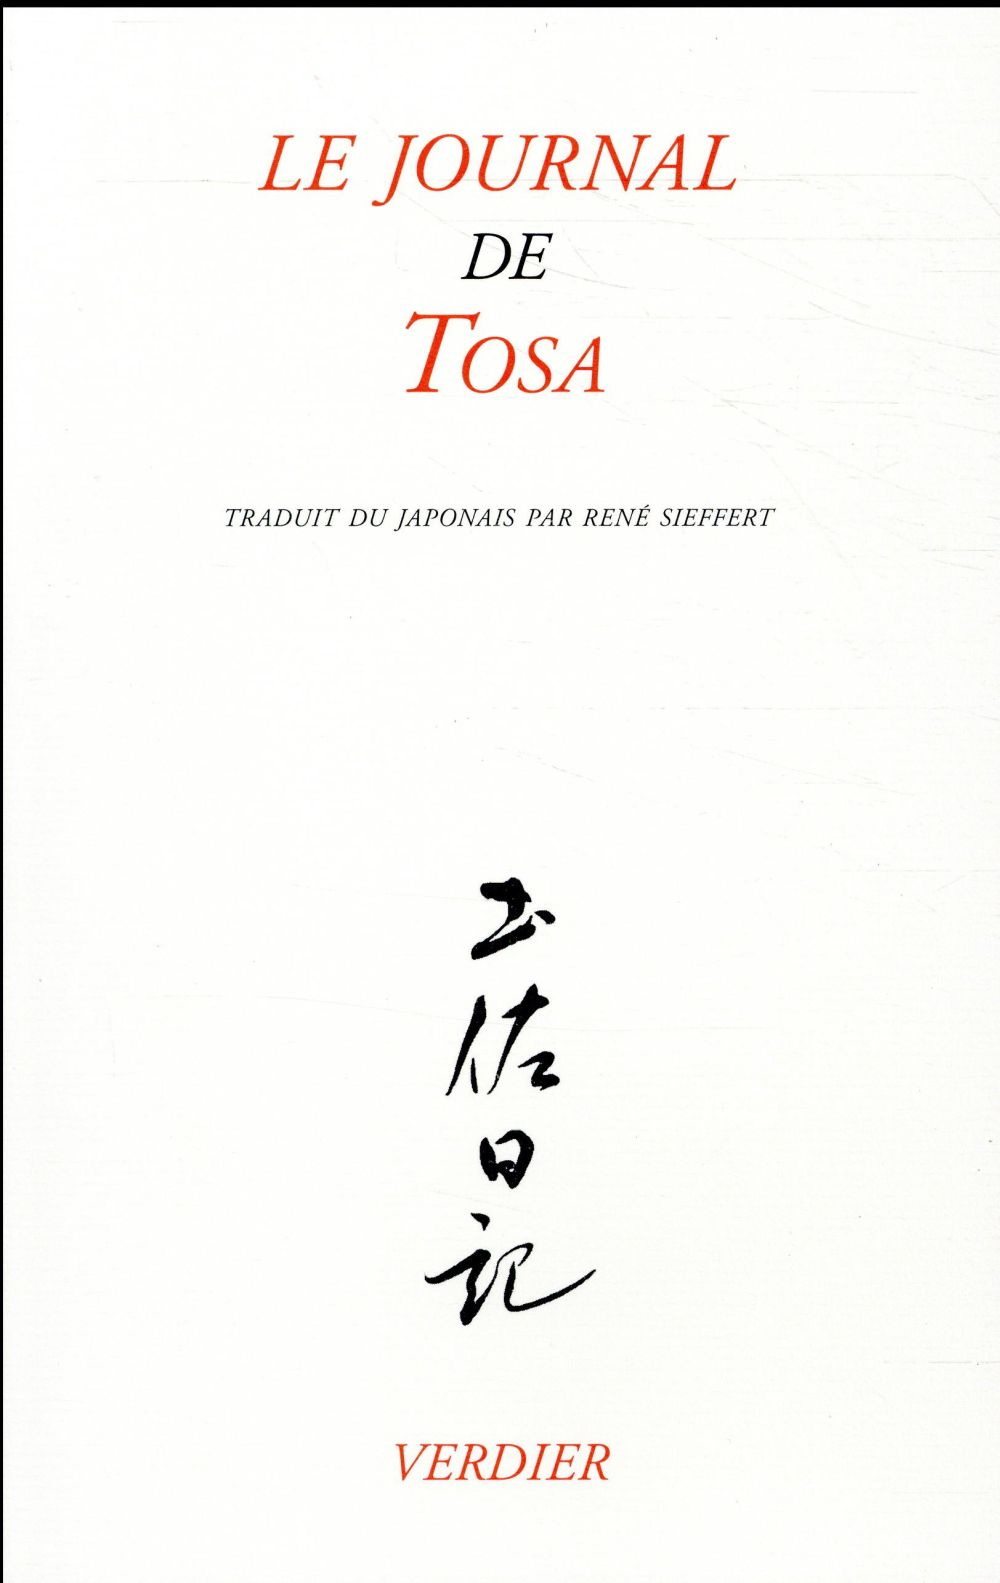 Le journal de Tosa